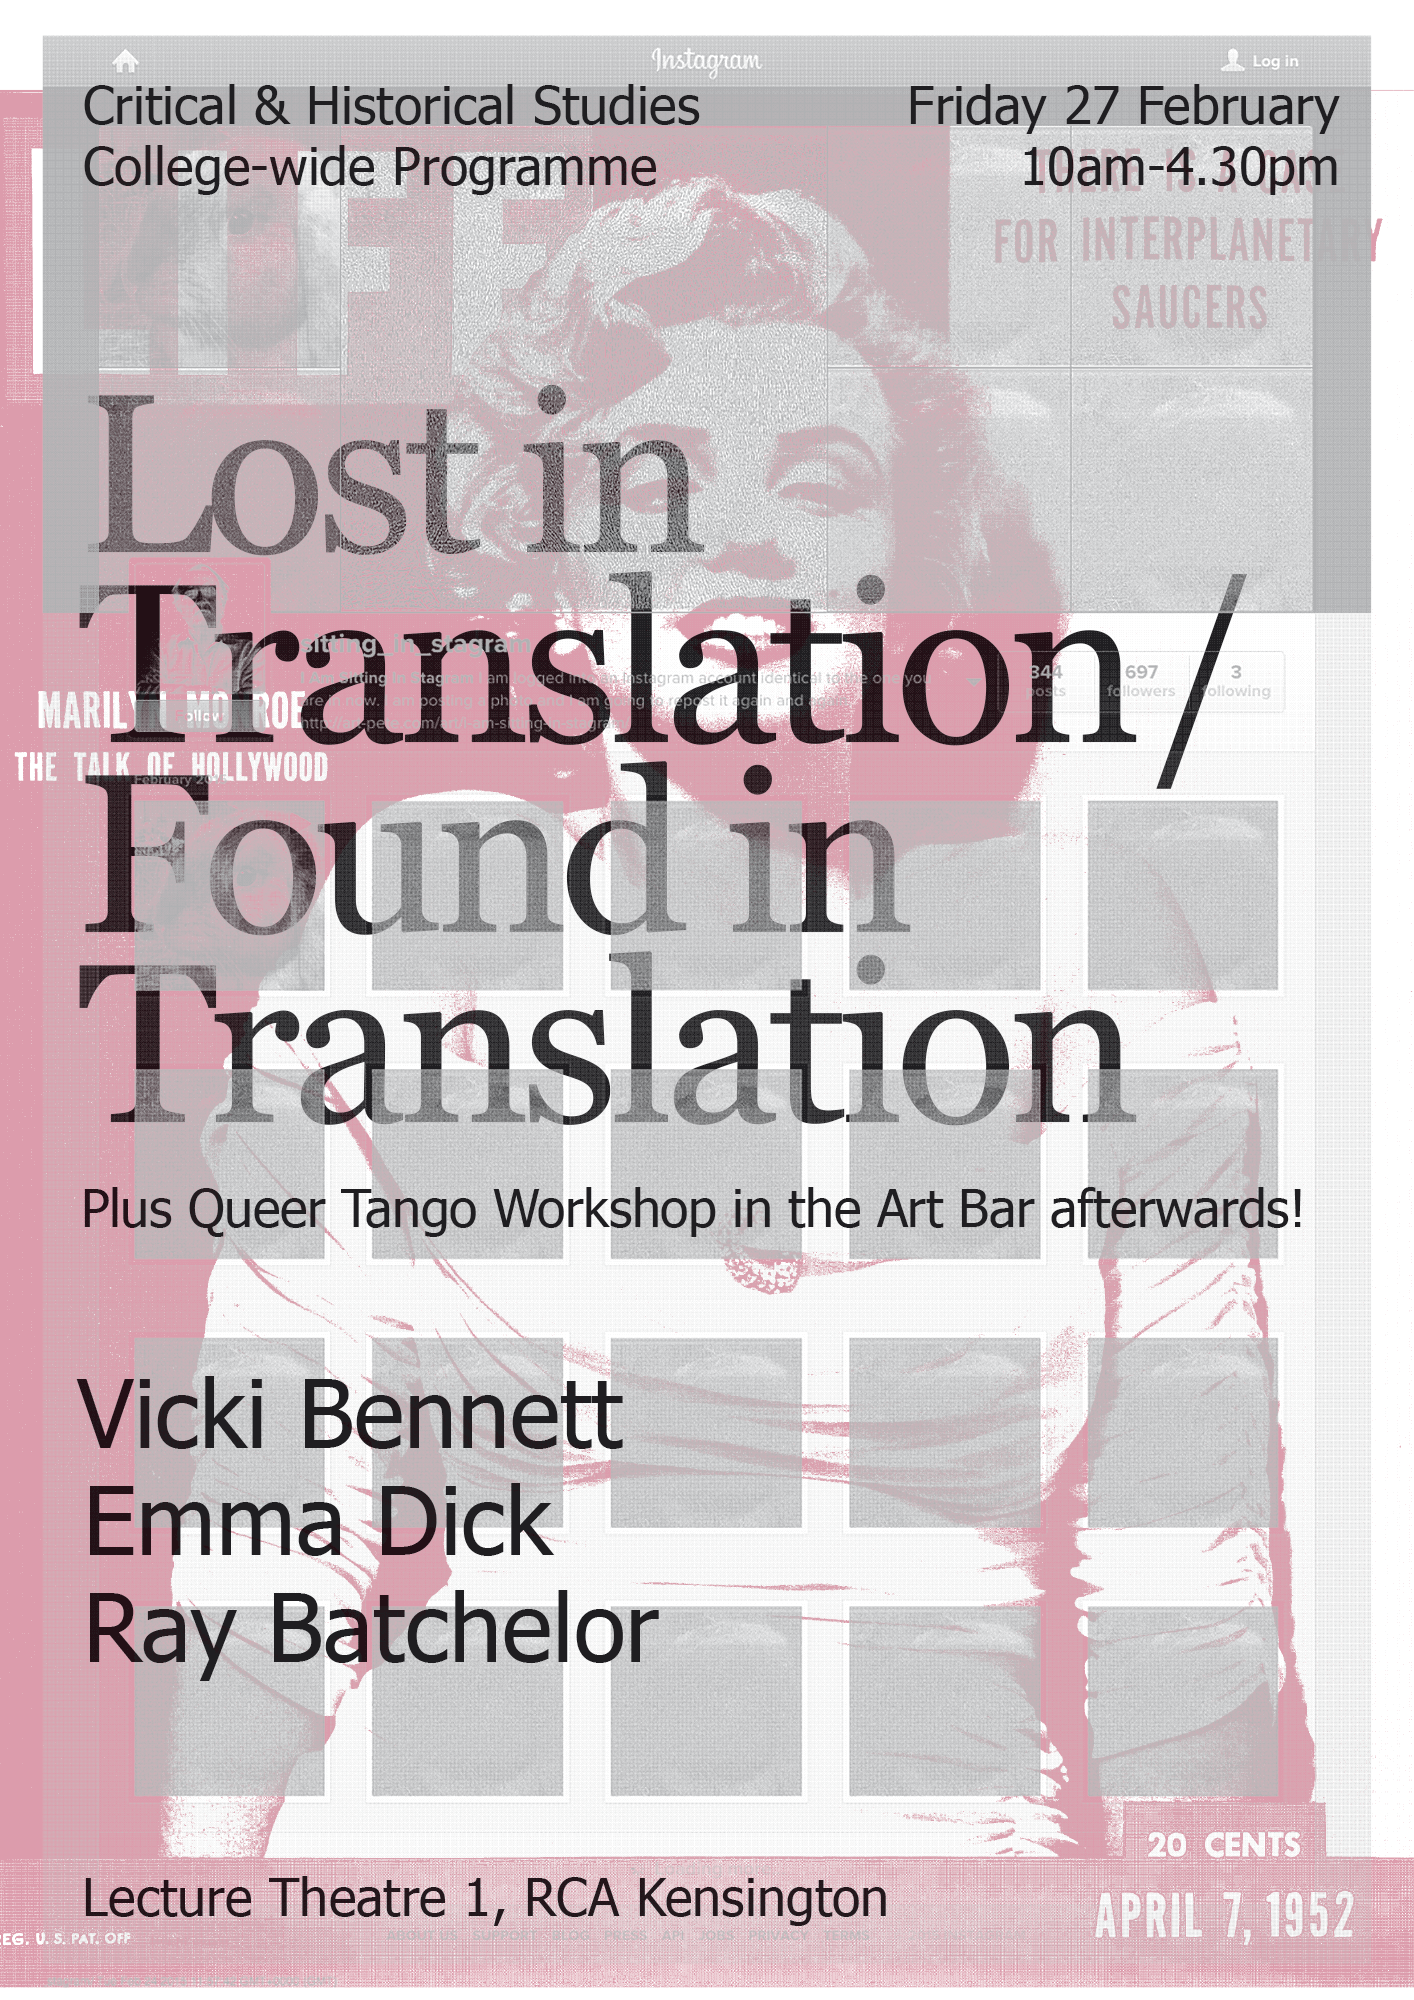 Jonas-Berthod---CHS-symposia-series,-RCA---Lost-In-Translation